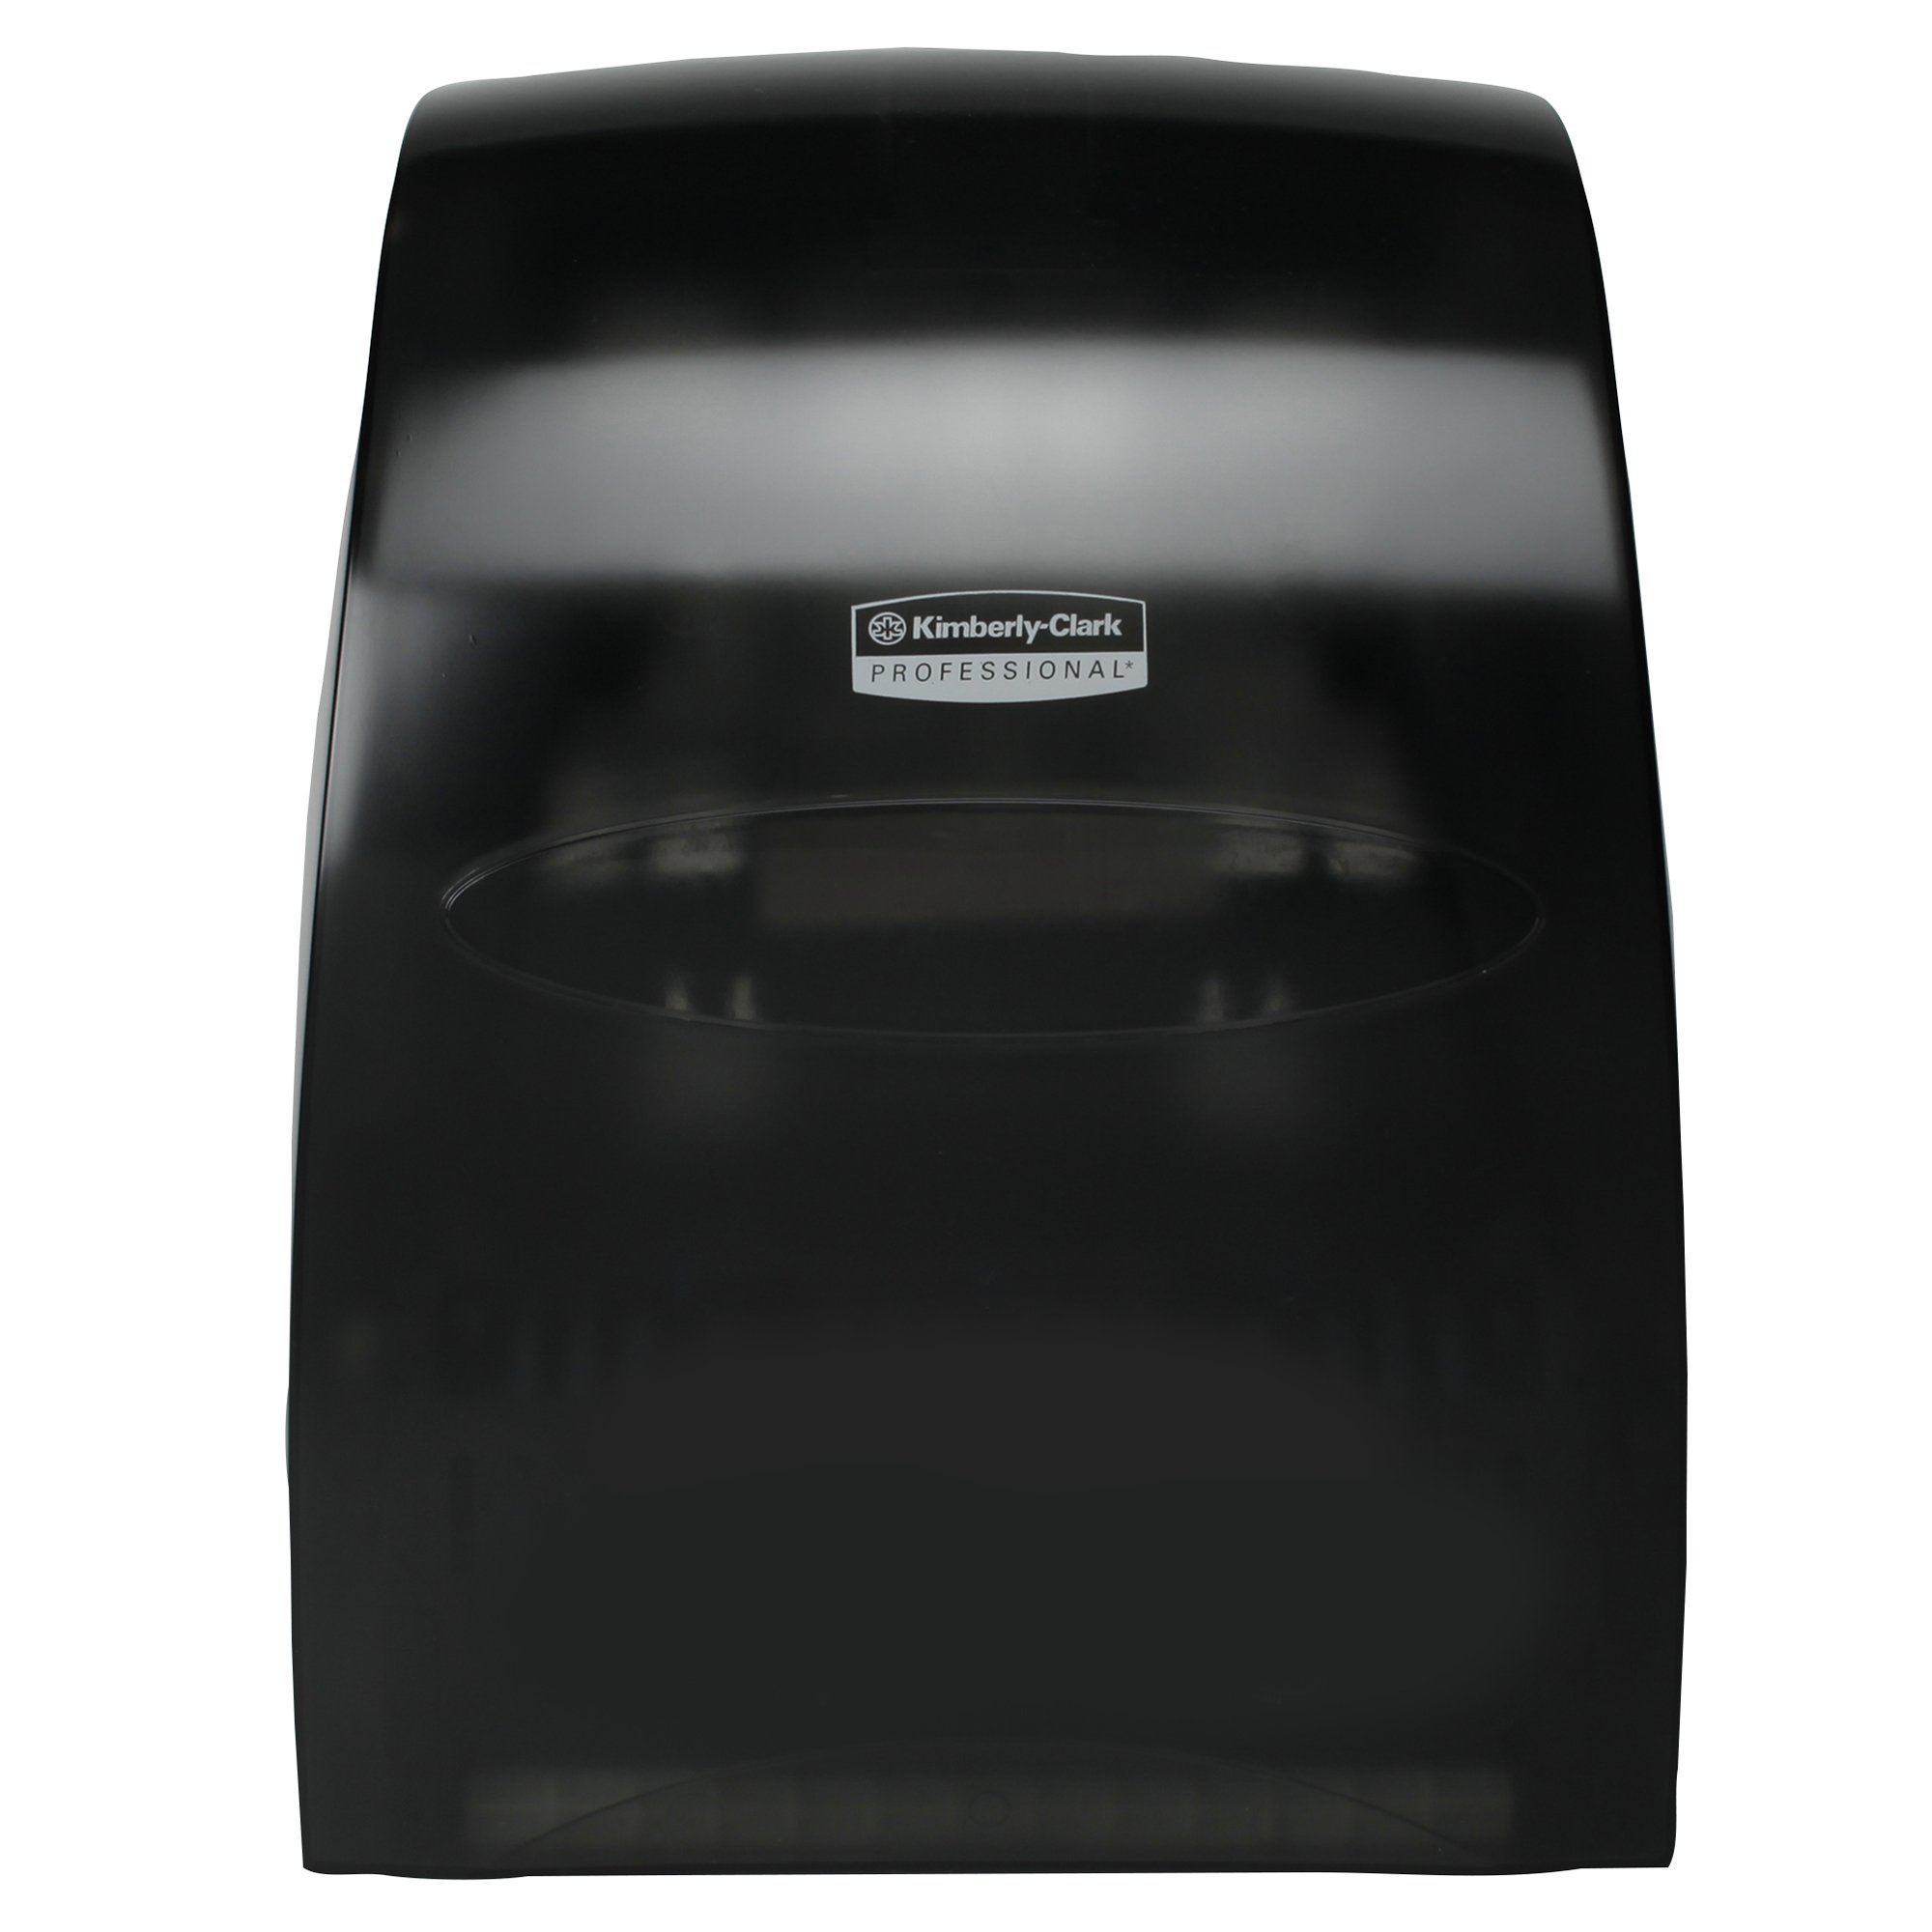 Kimberly Clark Professional Automatic High Capacity Paper Towel Dispenser (09992), Touchless, Battery Powered, Black